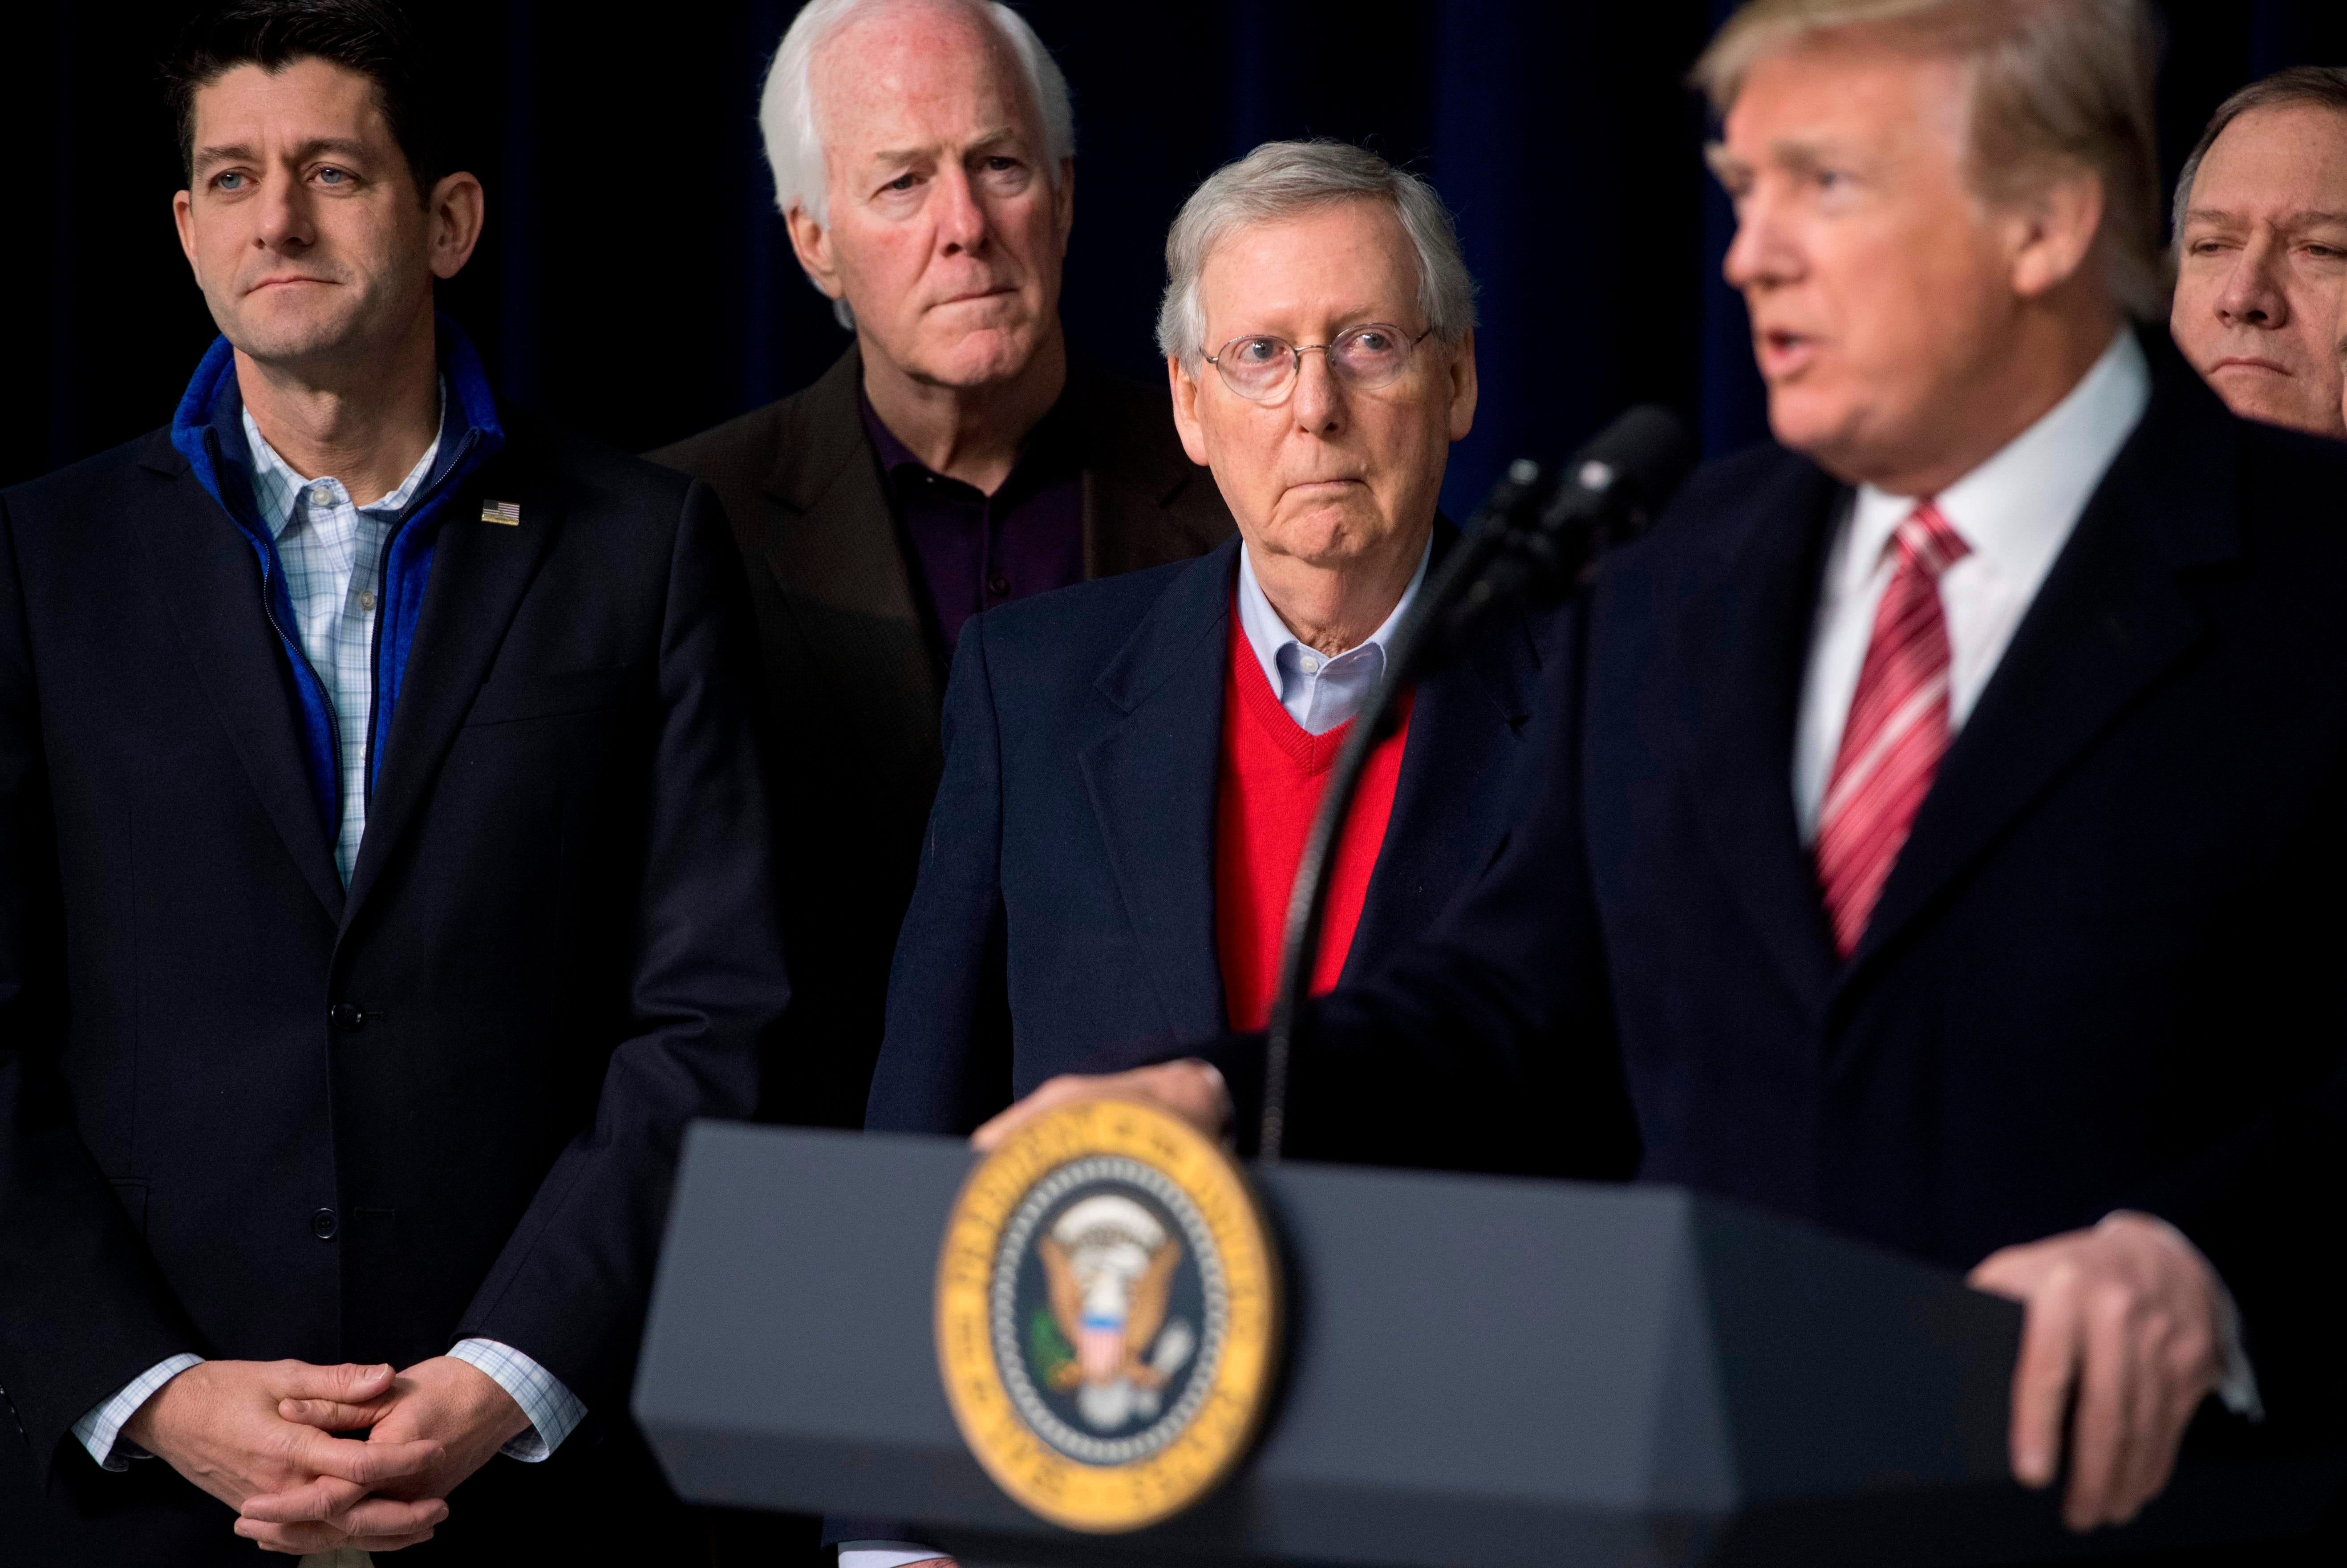 House Republicans plan vote to avert shutdown but Trump may have made it harder